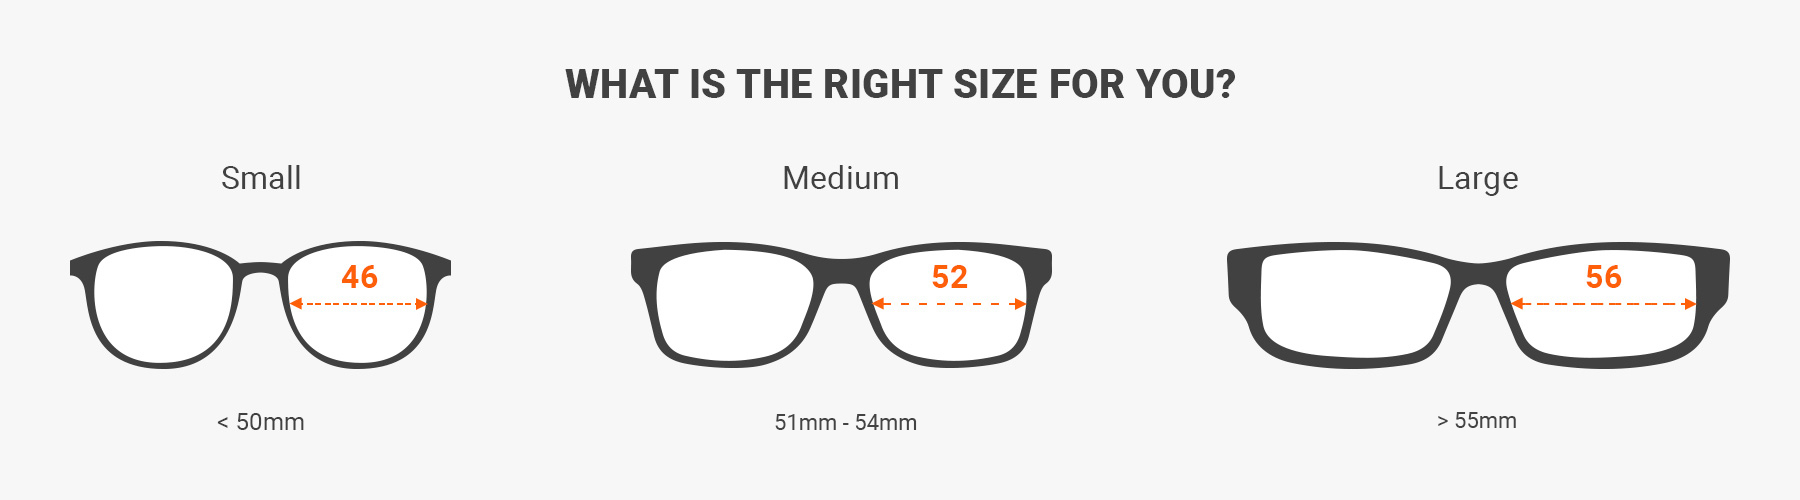 how to read glasses measurements - Measure glasses and sunglasses size with a ruler